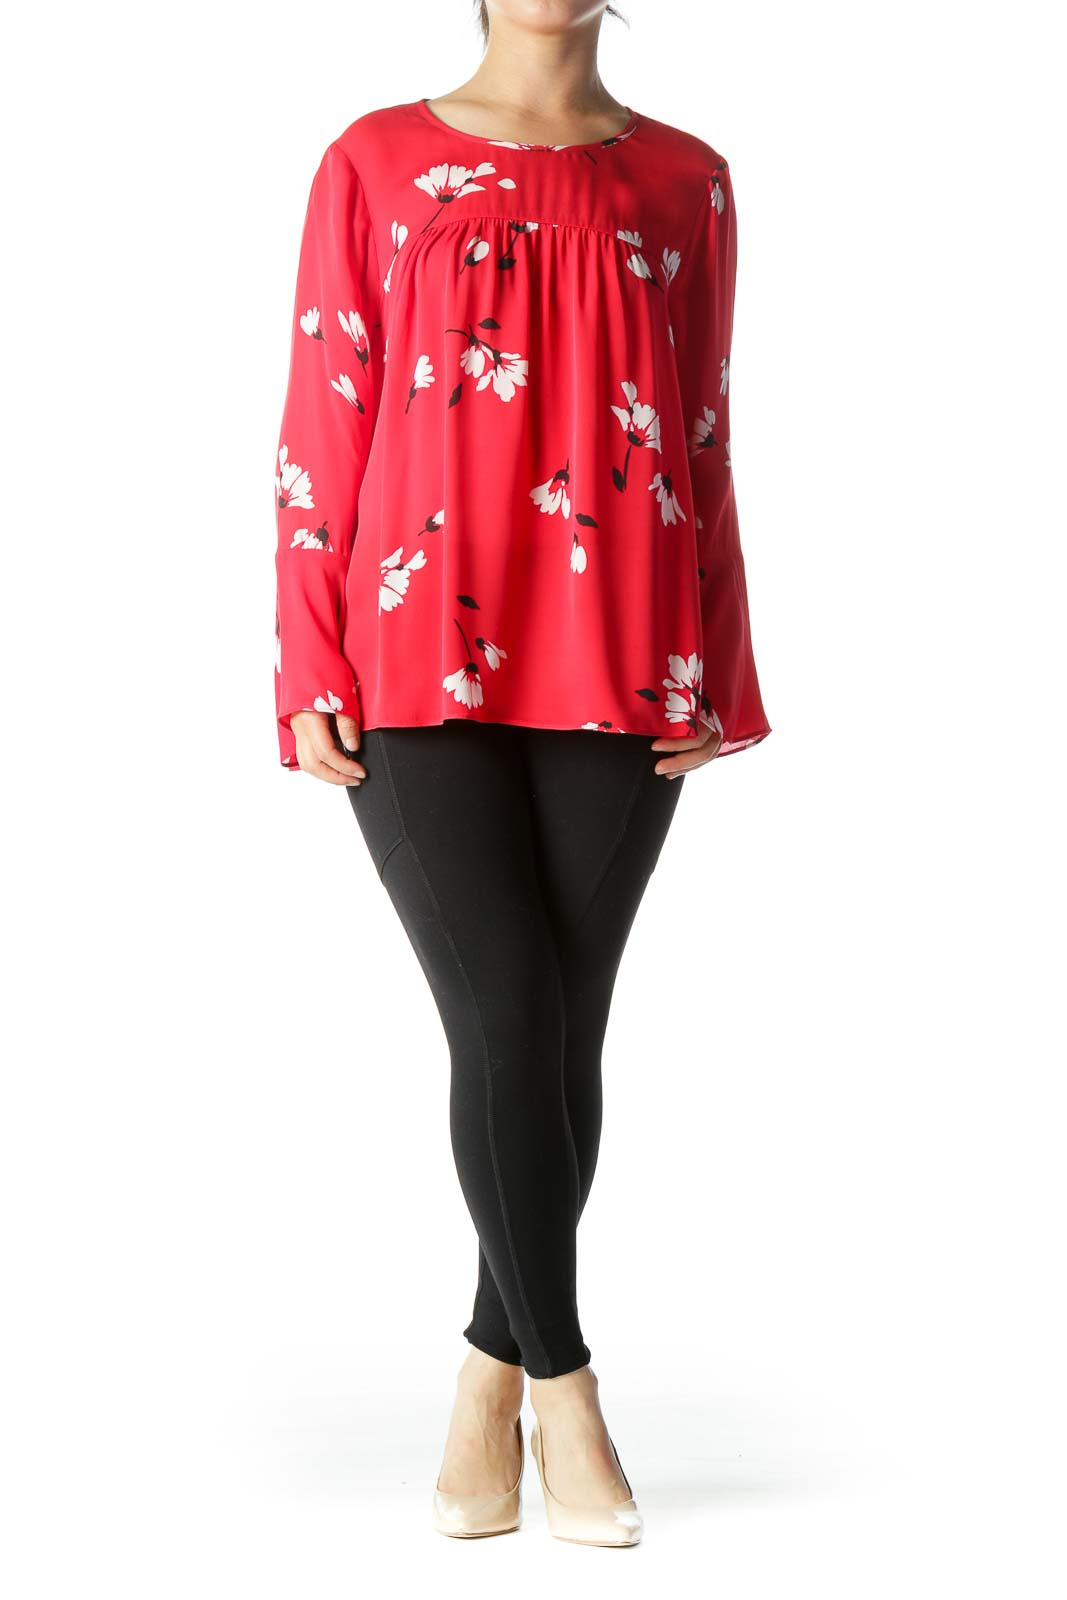 Red Black White 100% Silk Floral-Print Long-Flared-Sleeves Blouse